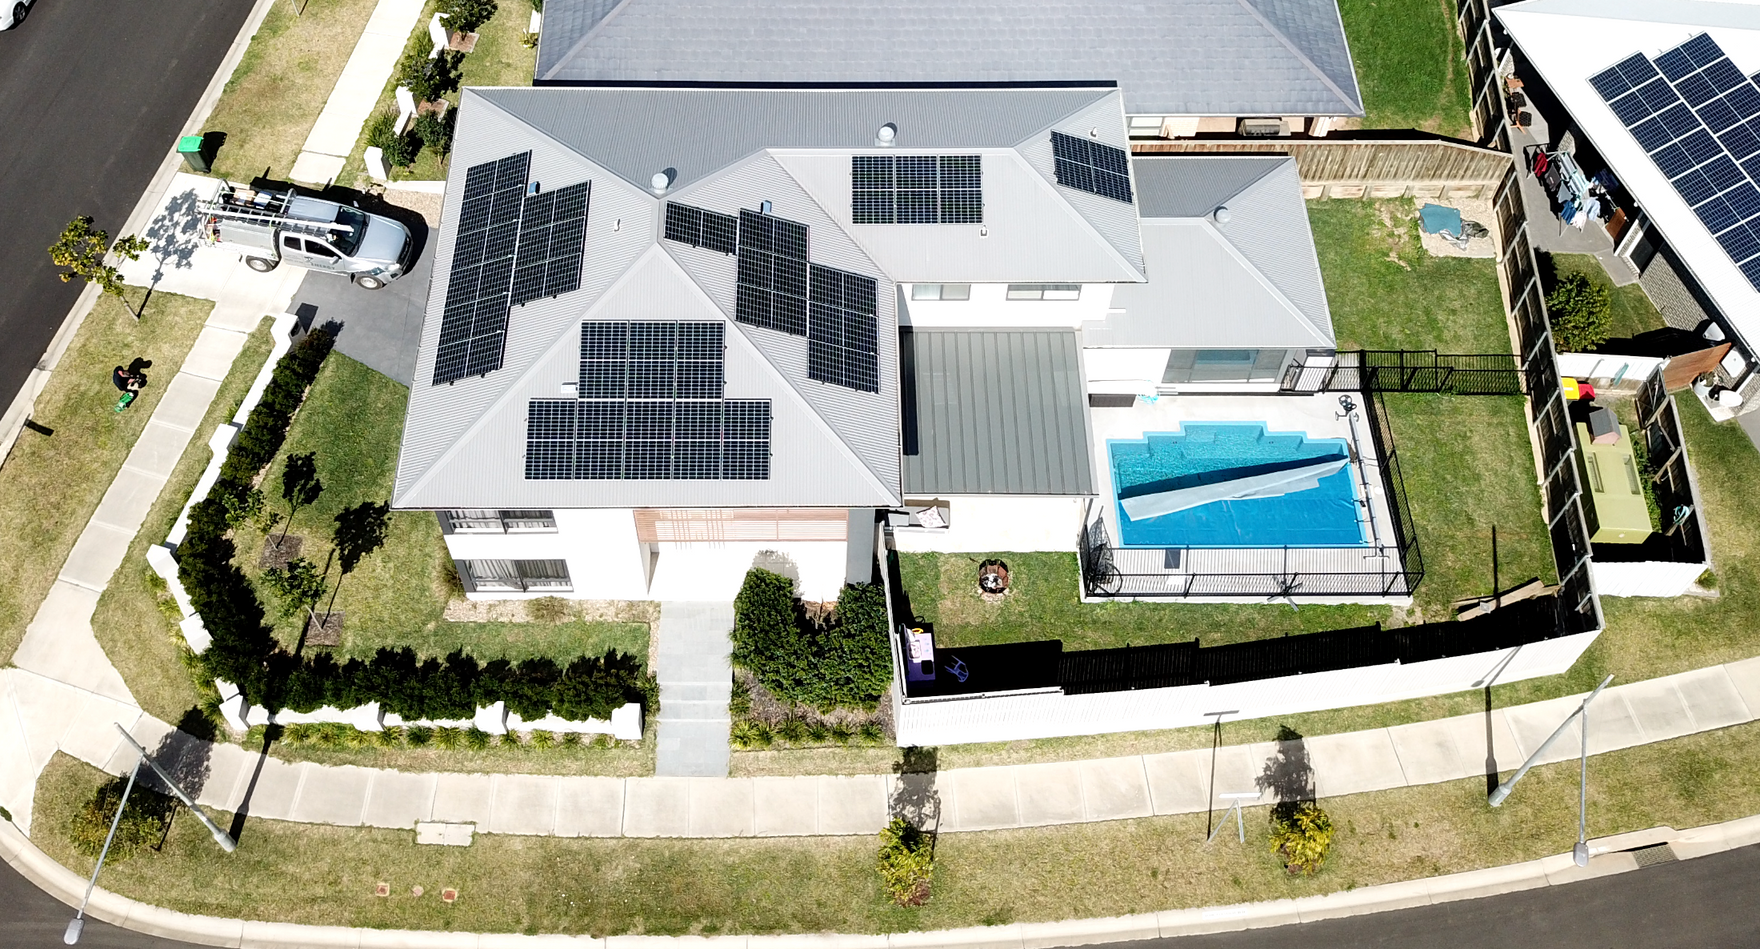 Gledswood Hills - System Size 10.7 kW